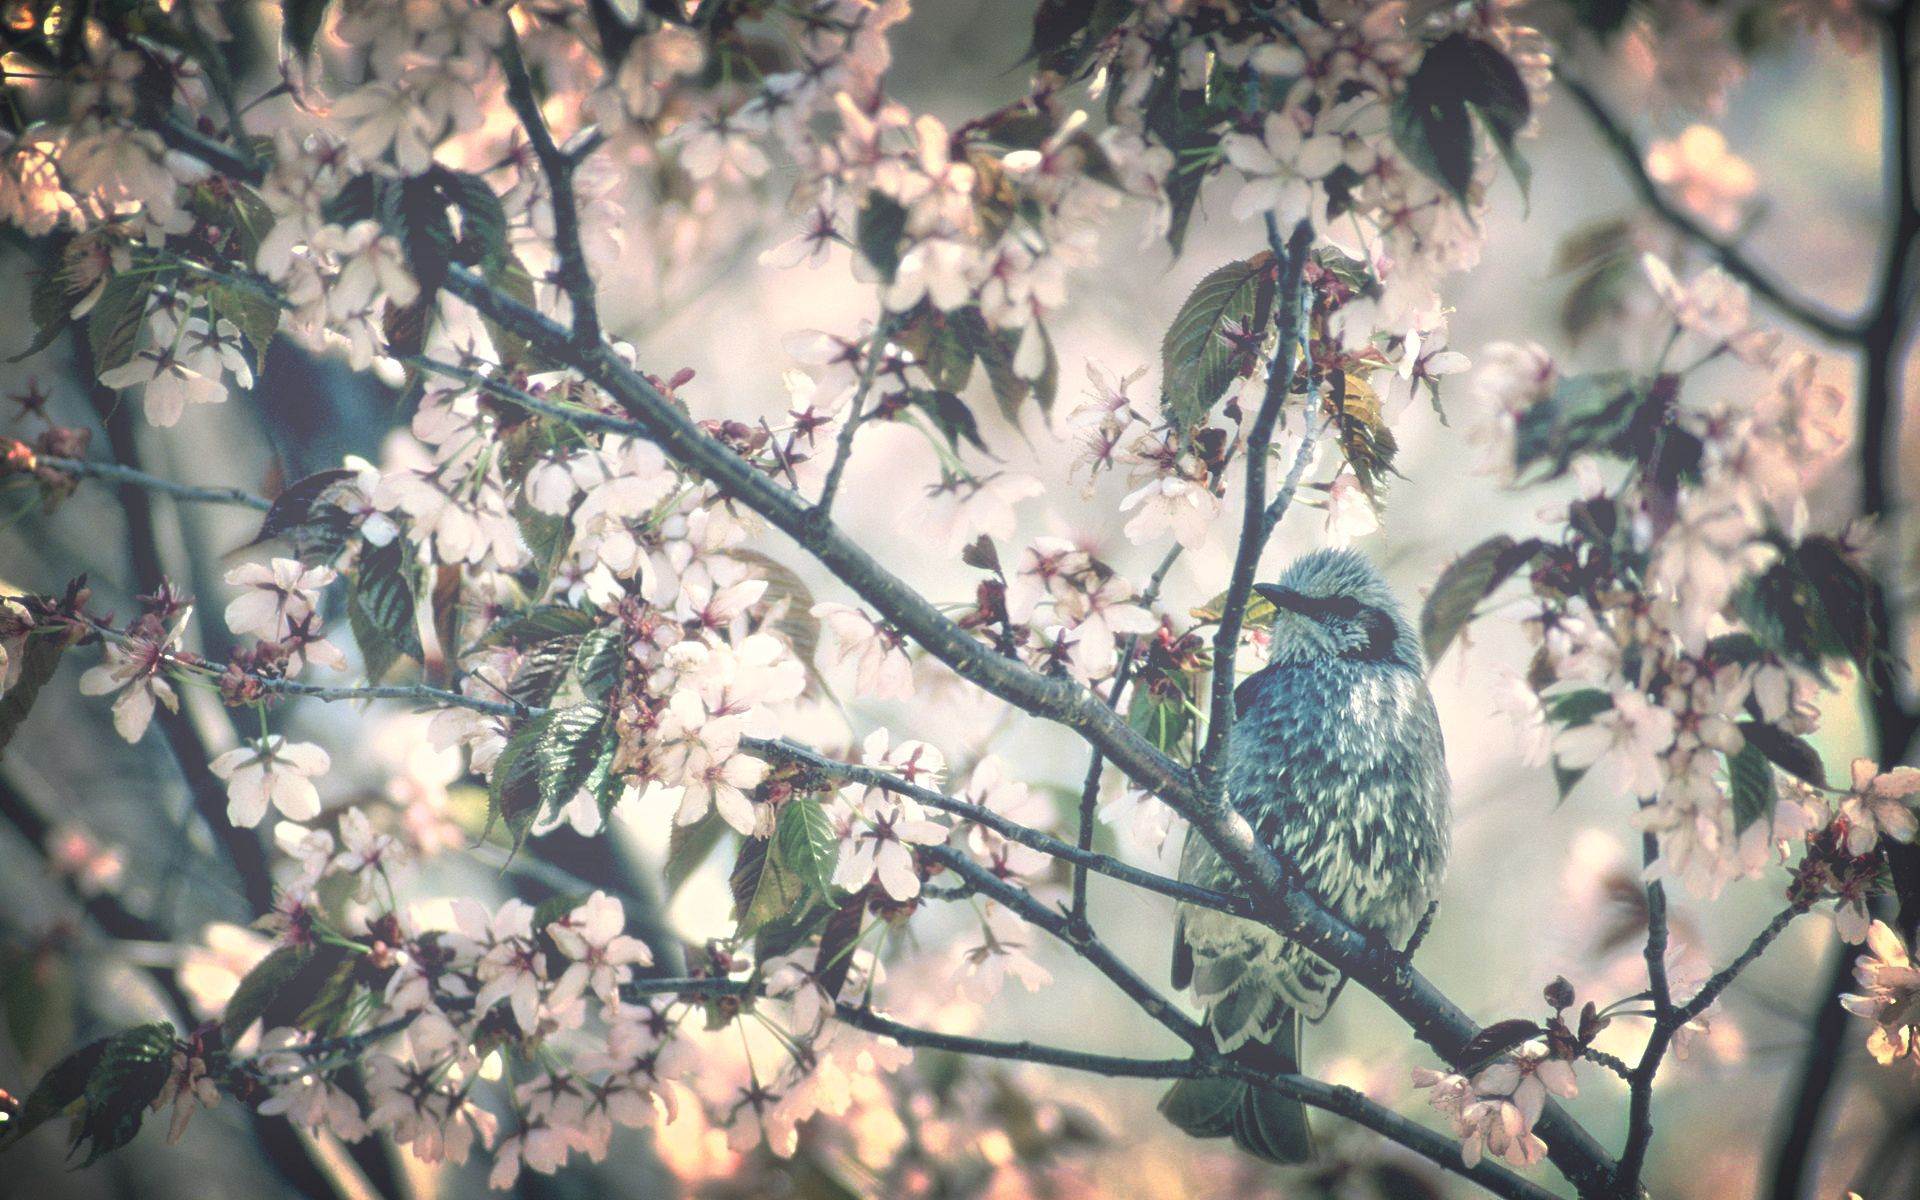 153463 download wallpaper Animals, Bird, Wood, Tree, Branch, Spring, Bloom, Flowering, Flowers screensavers and pictures for free